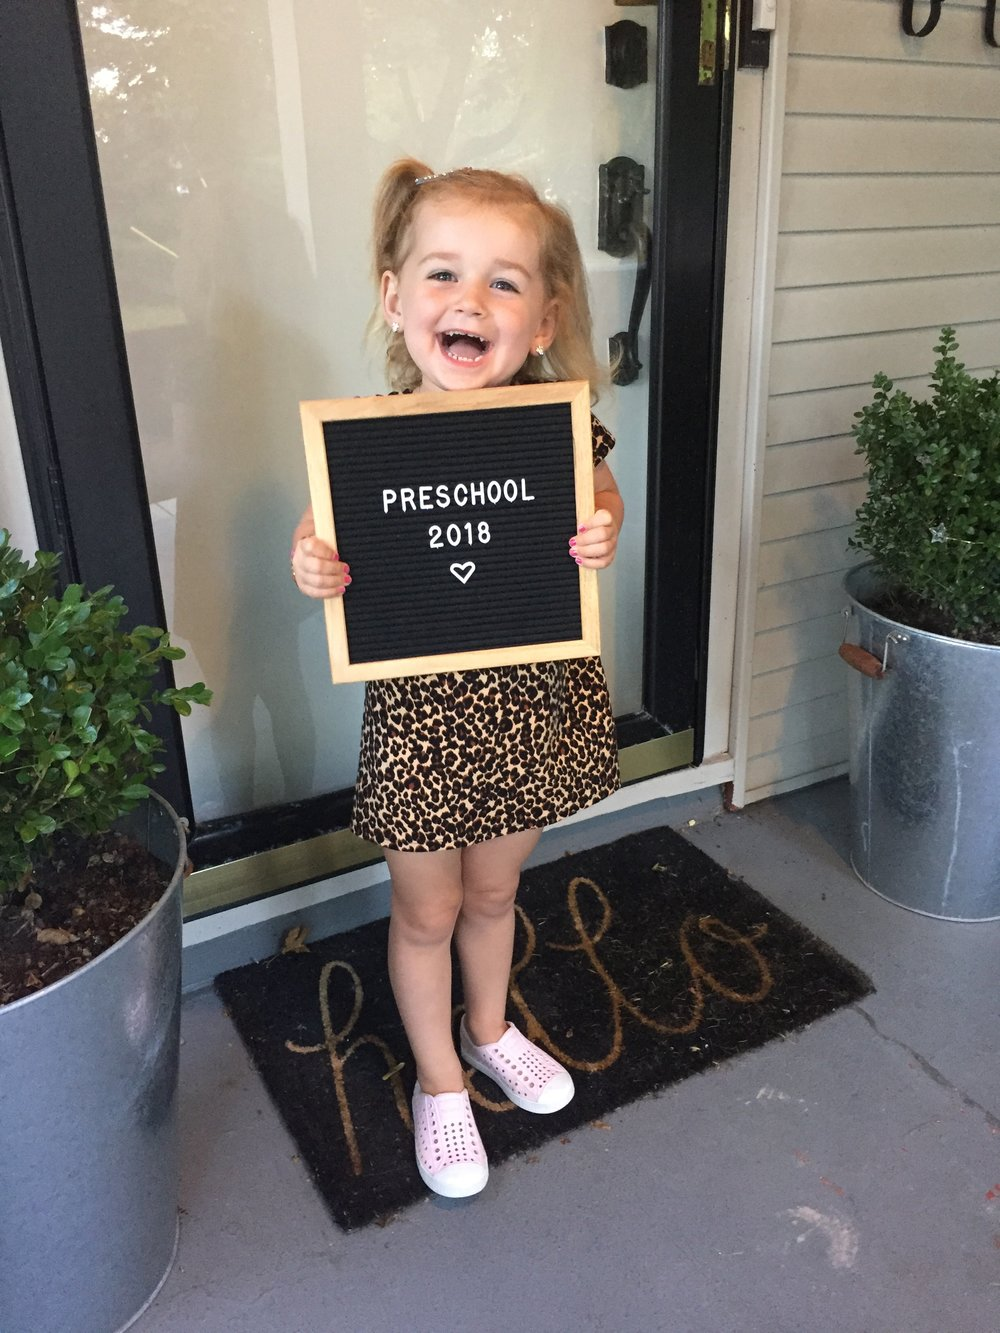 Preschool First Day.jpg